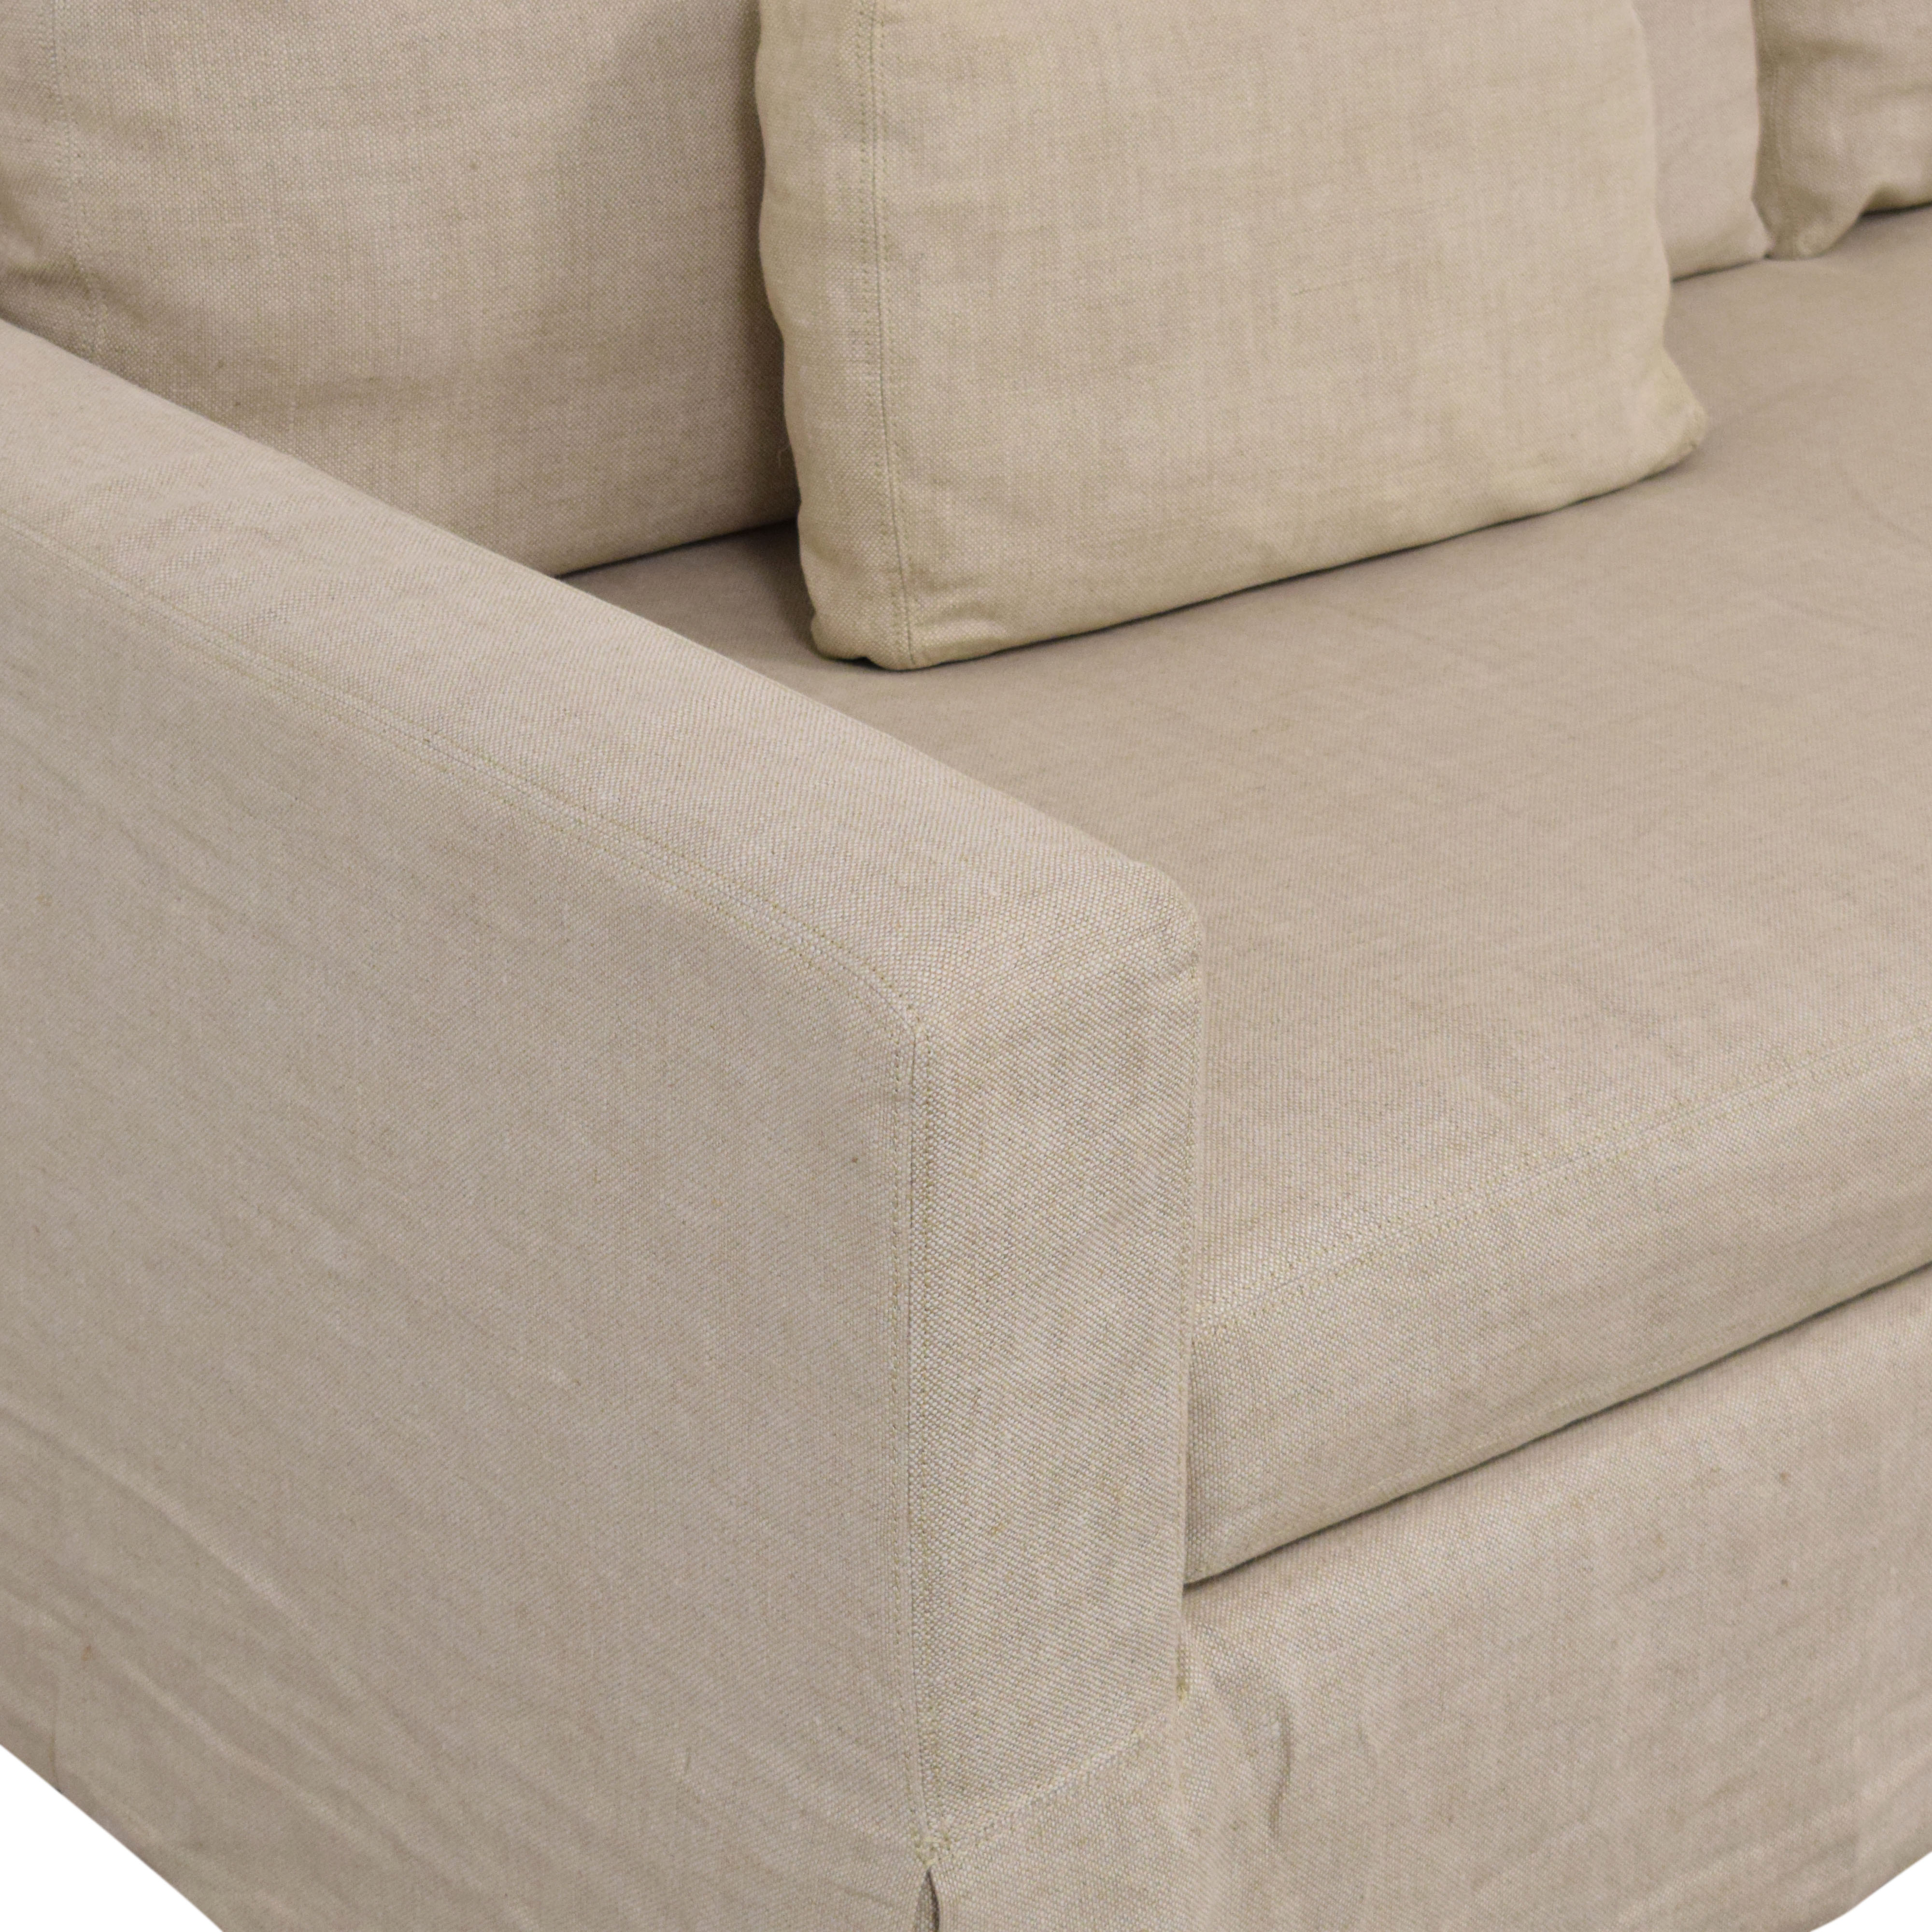 Restoration Hardware Restoration Hardware Belgian Track Arm Upholstered Sofa coupon